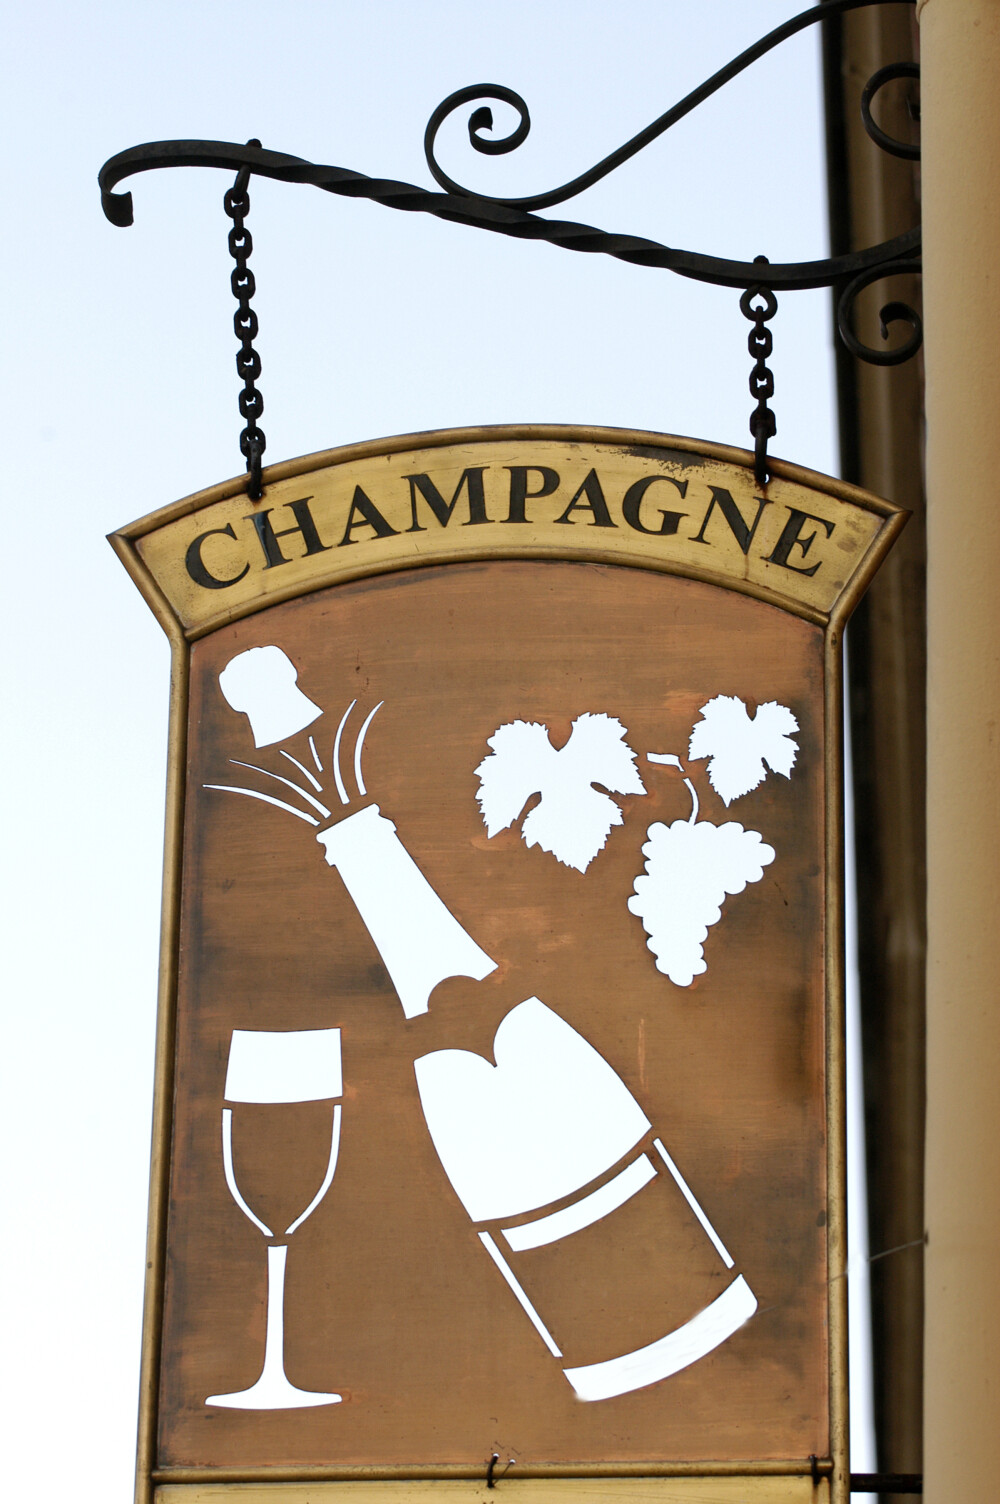 De Beste Restaurants in Champagne